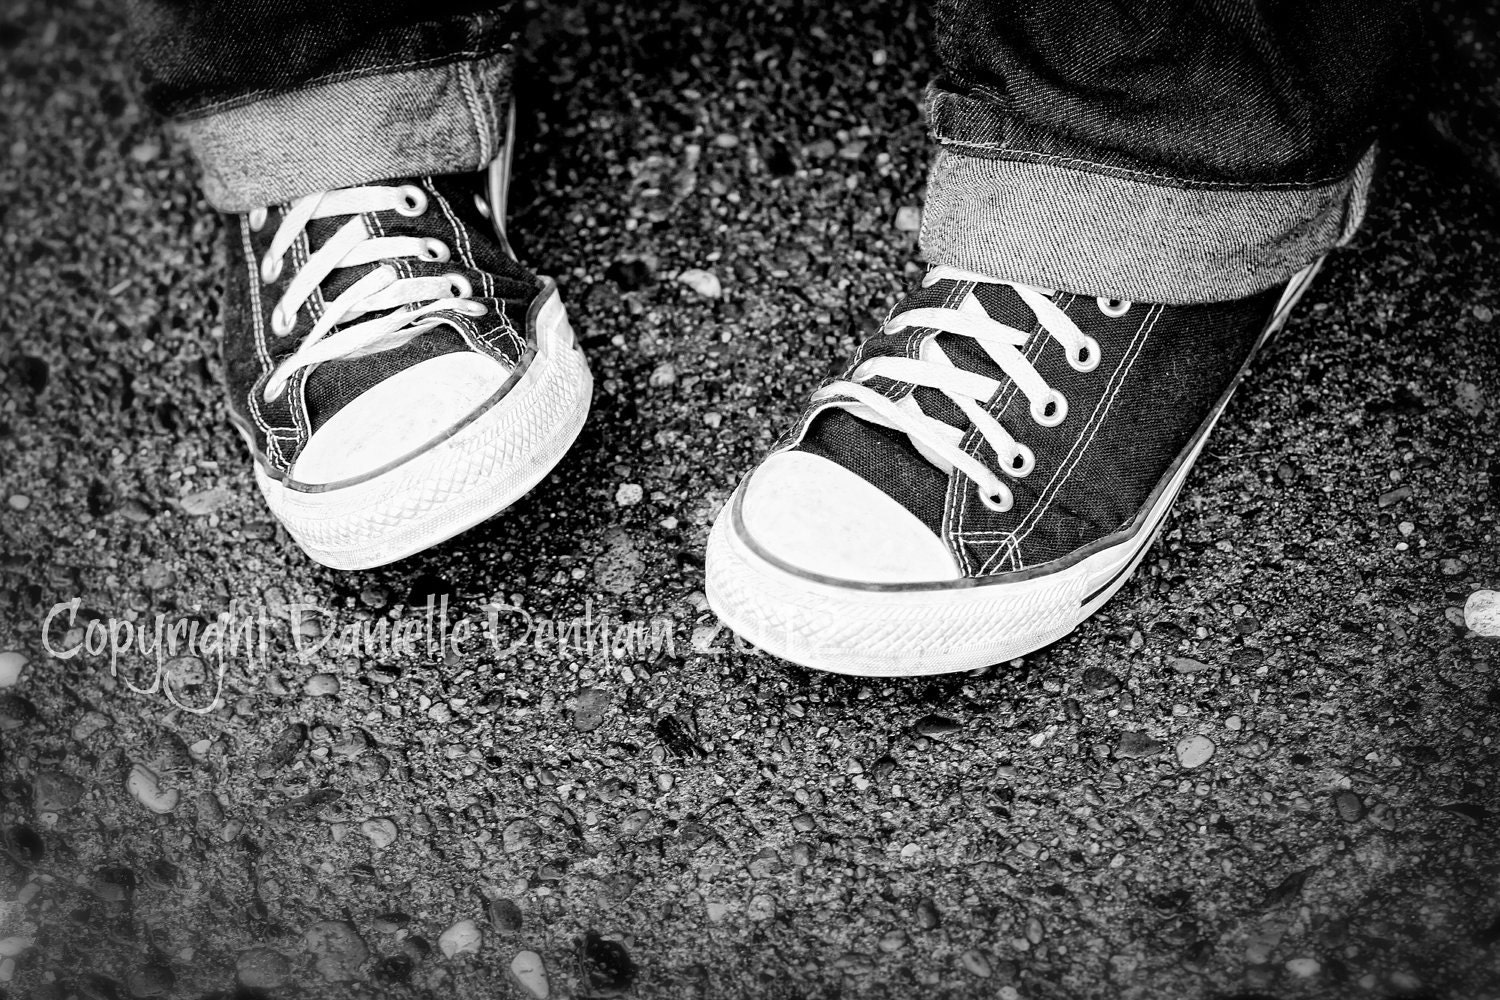 shoe photo chuck taylor converse black and whitefine art